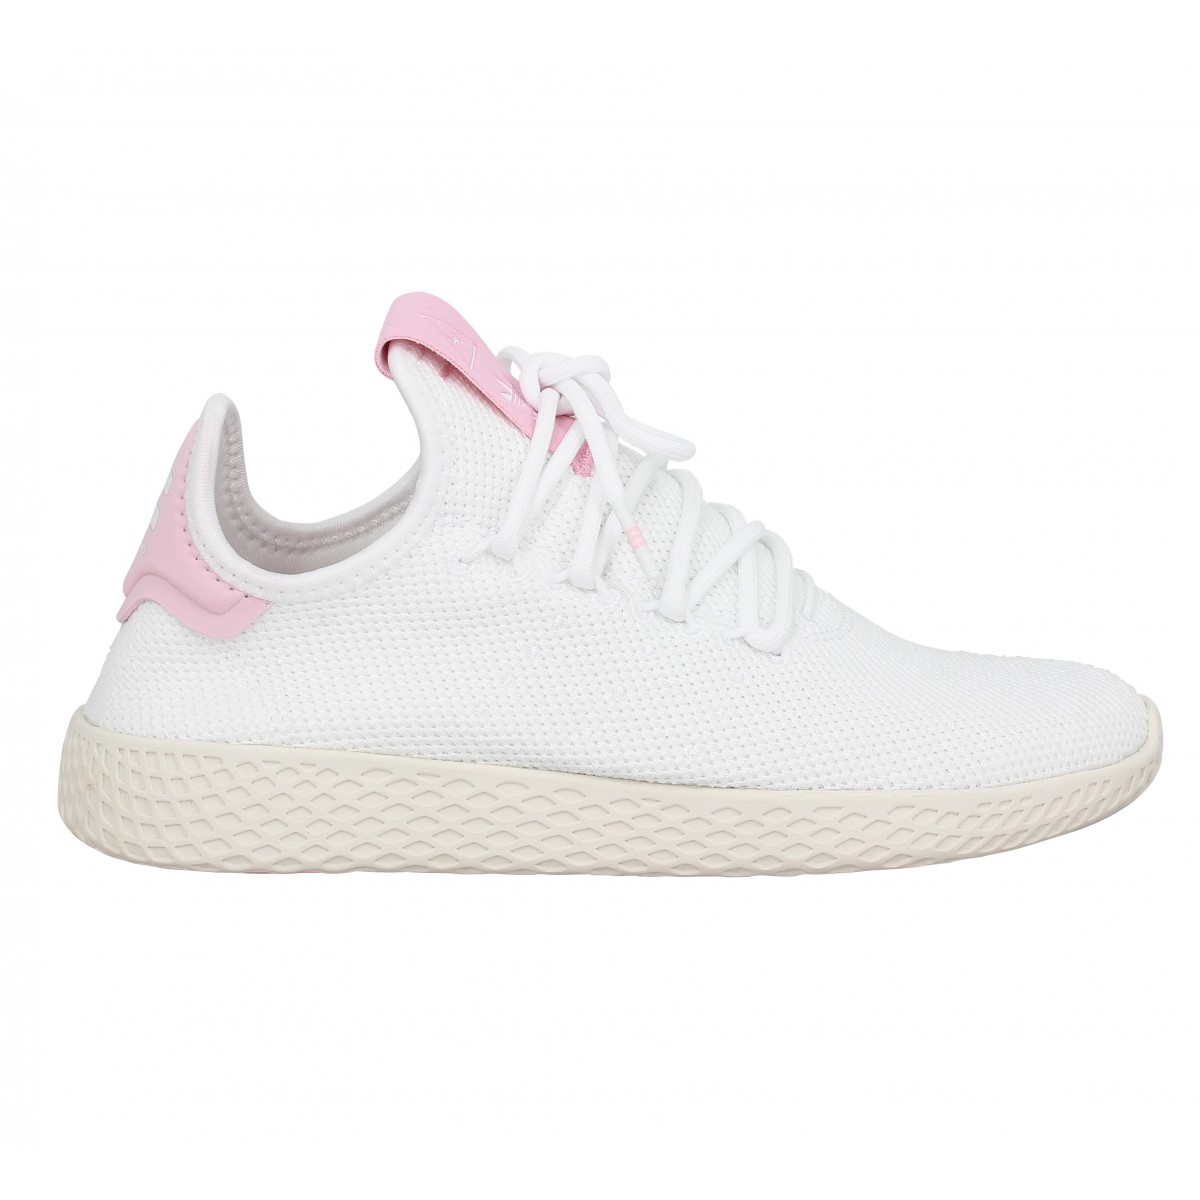 sports shoes f8cd8 bc96a adidas pharrell williams femme Chaussures Adidas x pharrell williams pw  tennis ...